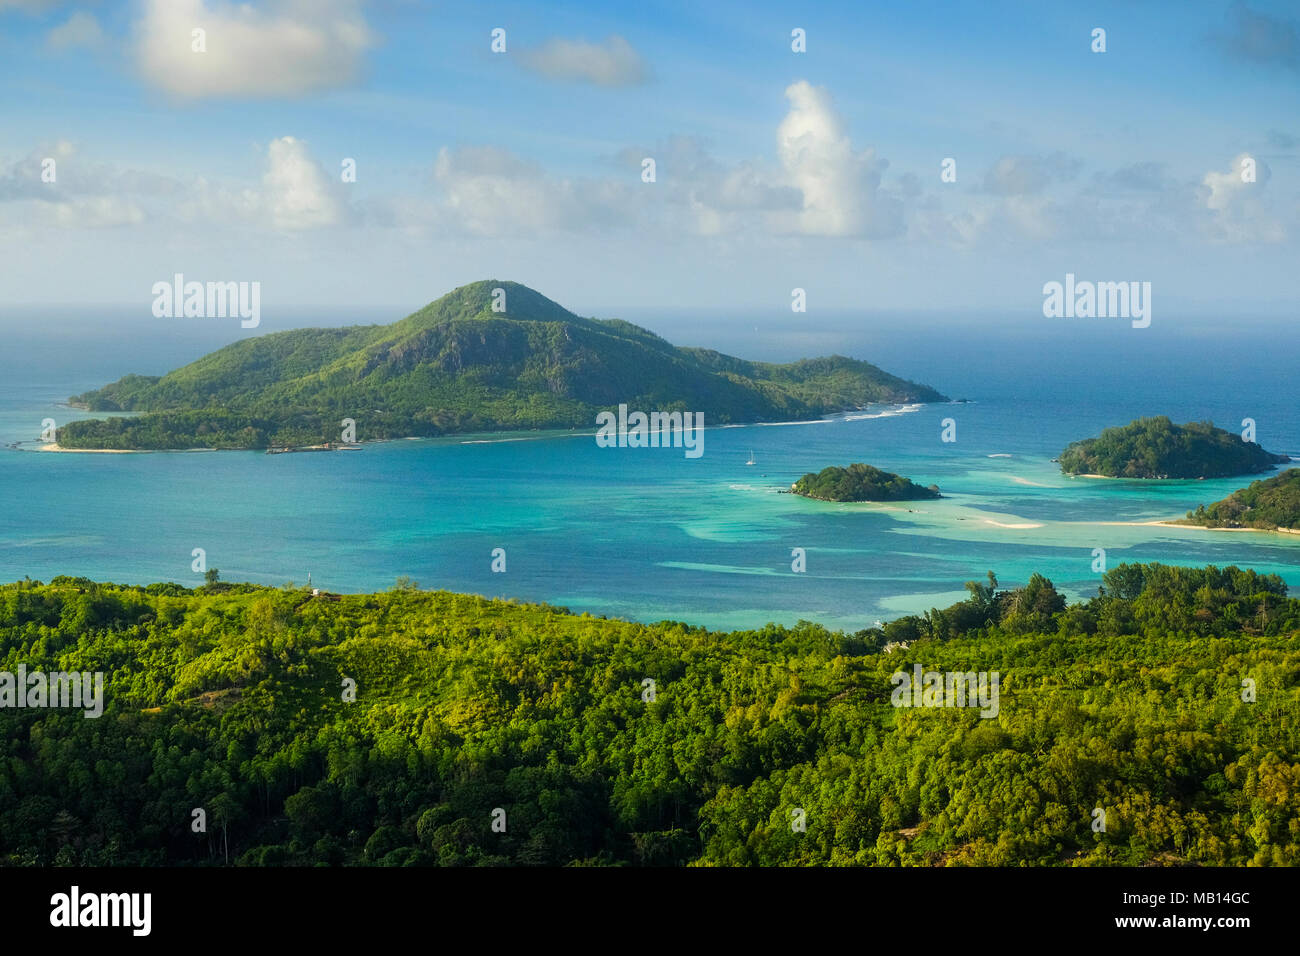 Aerial view of St Anne Marine National Park from Ille au Cerf, Seychelles - Stock Image